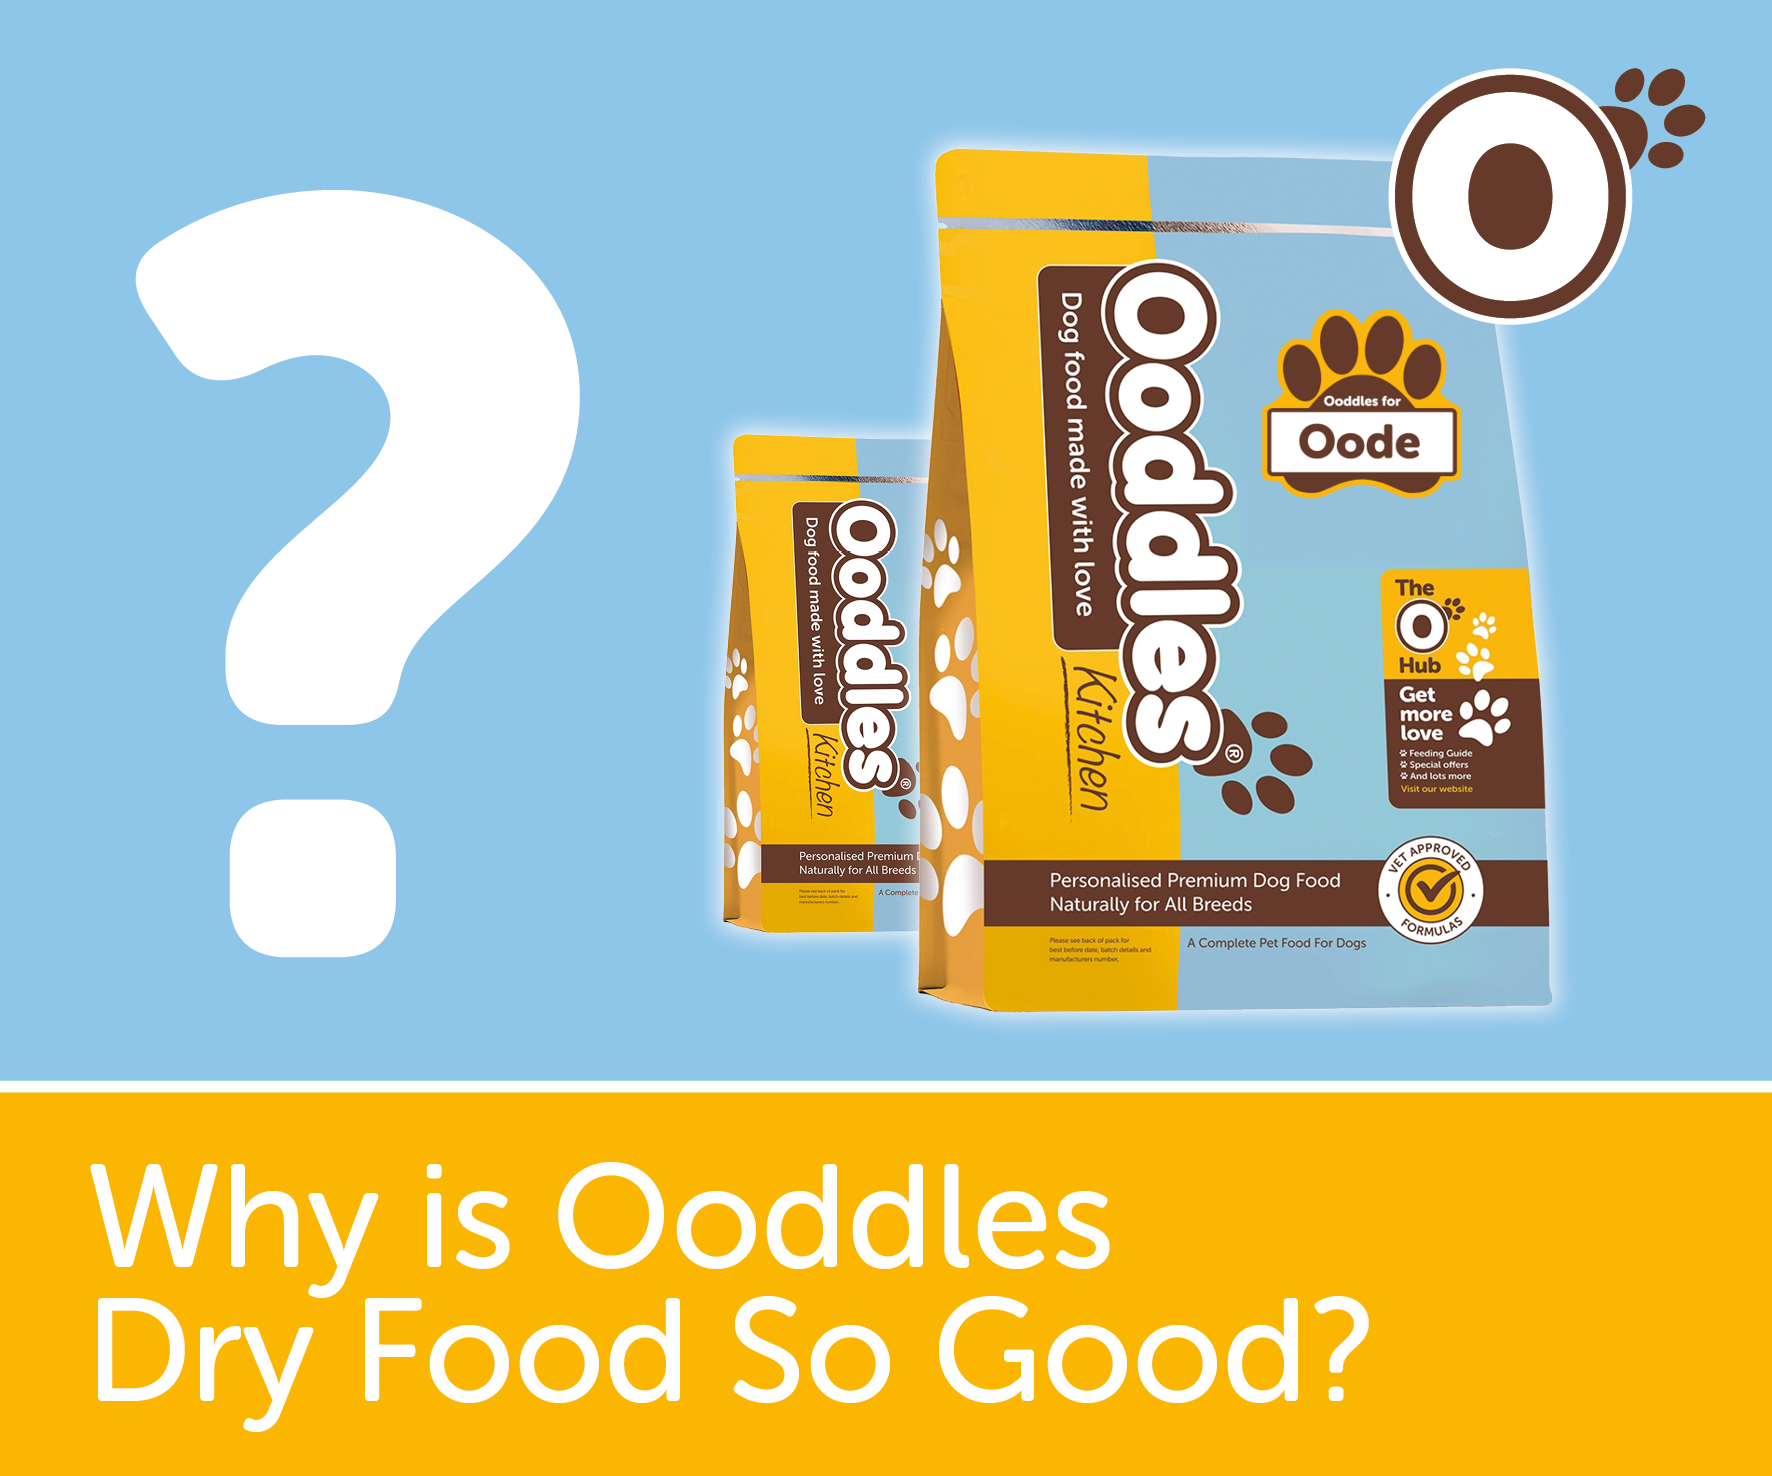 Why Ooddles Dry Food is so good